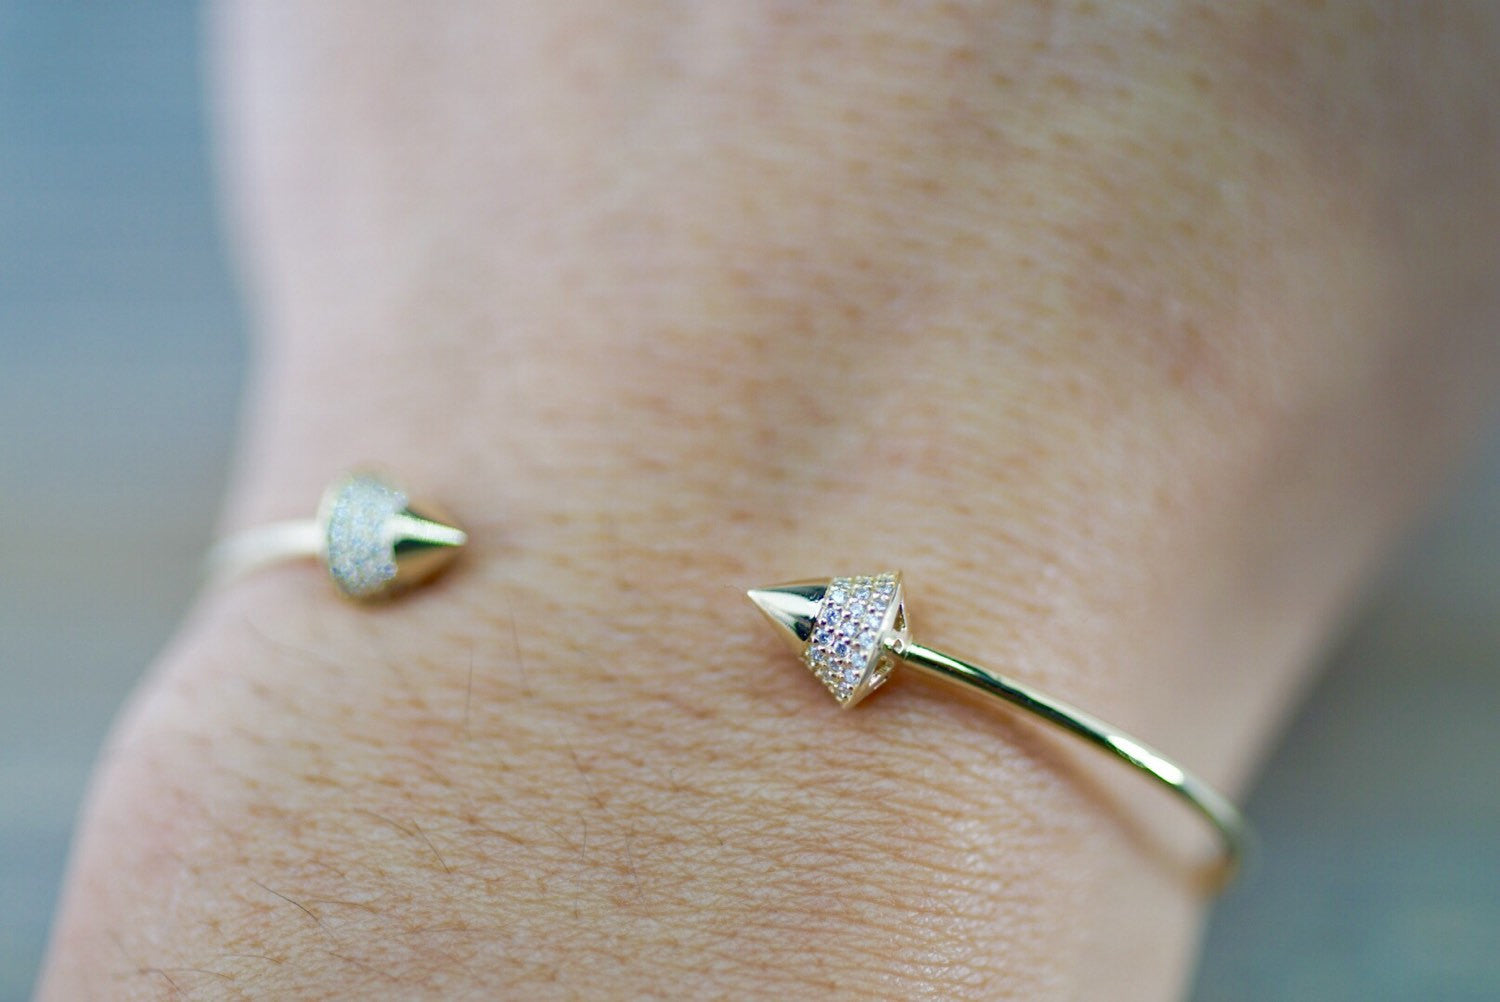 14k Yellow Gold Triangle Micro Pave Diamond Infinity Charm Dainty Gift Fashion Cuff Bangle